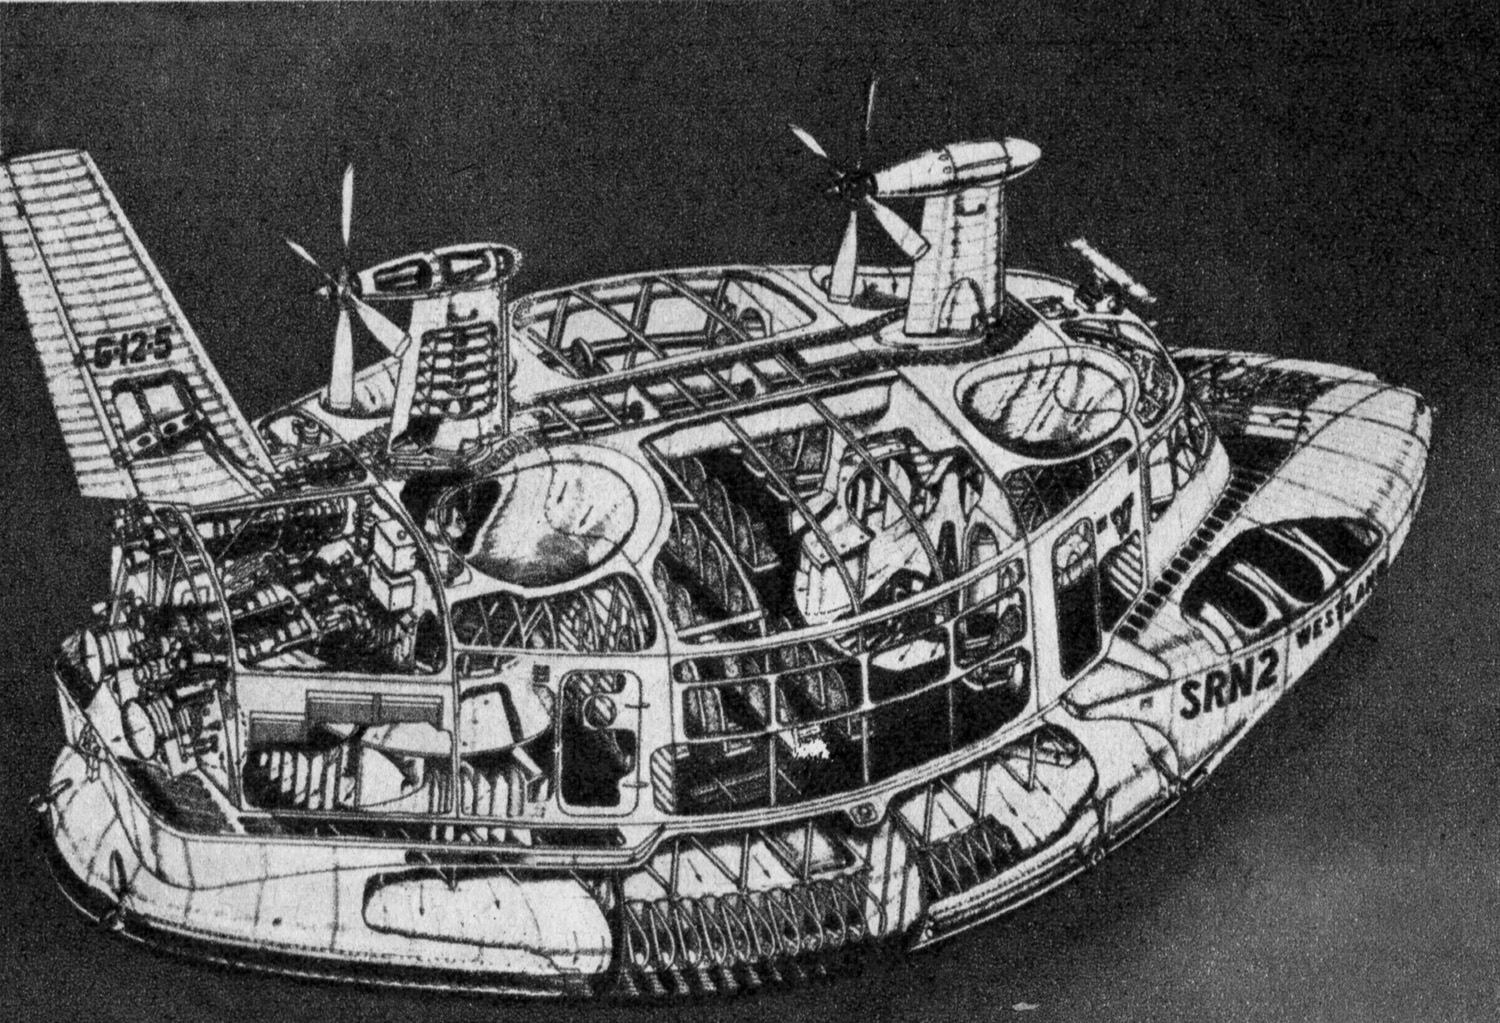 31 Levitating Vehicles From the Dawn of the Hovercraft